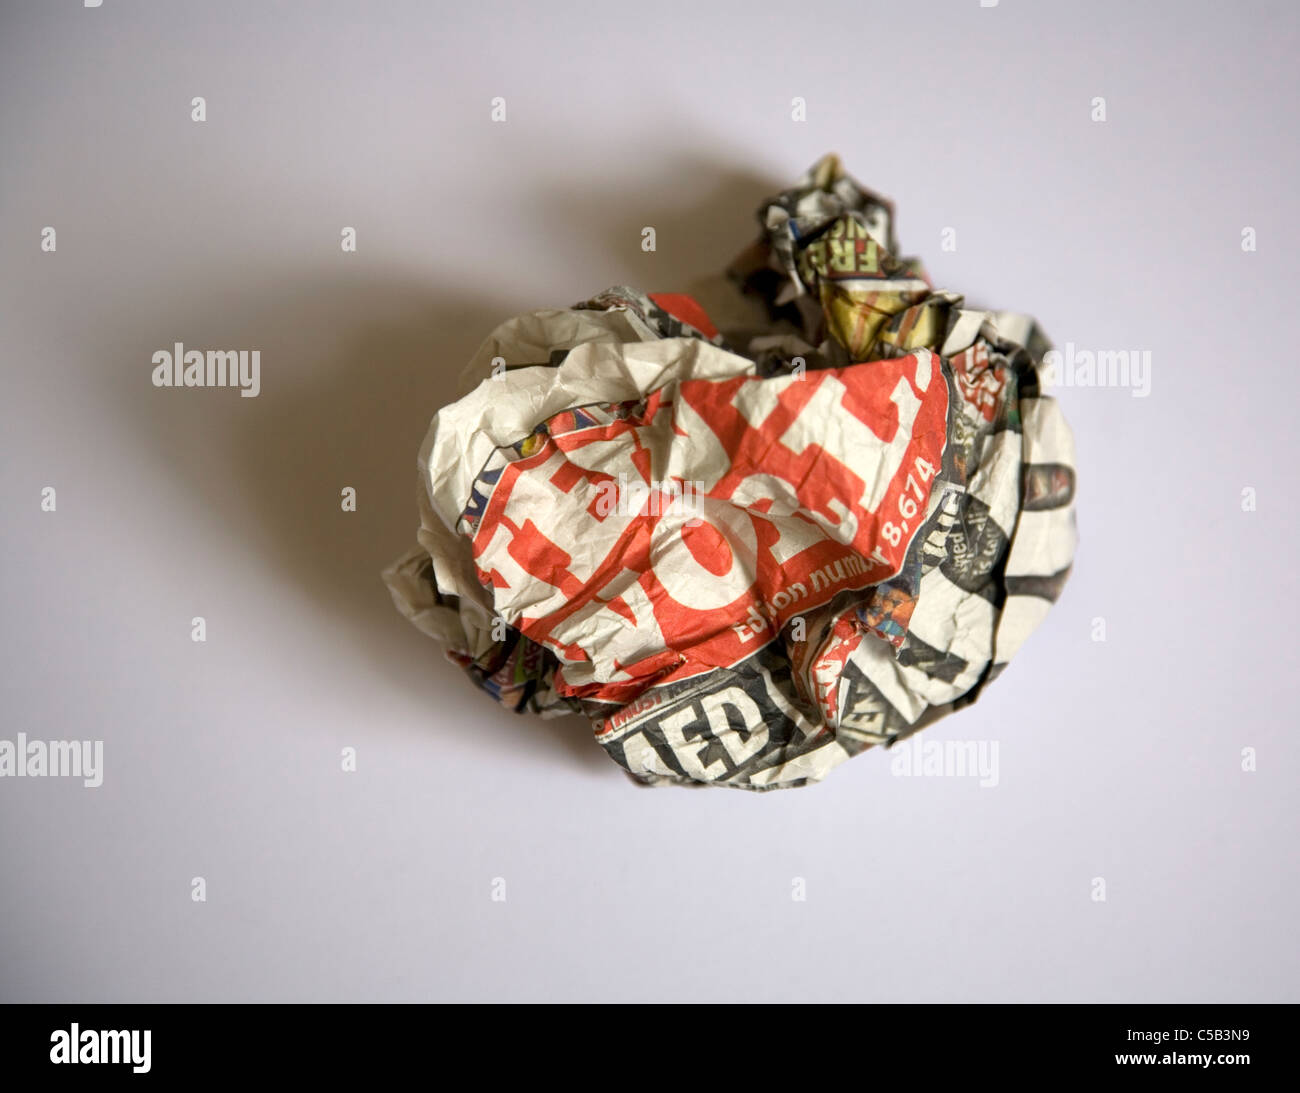 News Of World crumpled into a ball - Stock Image